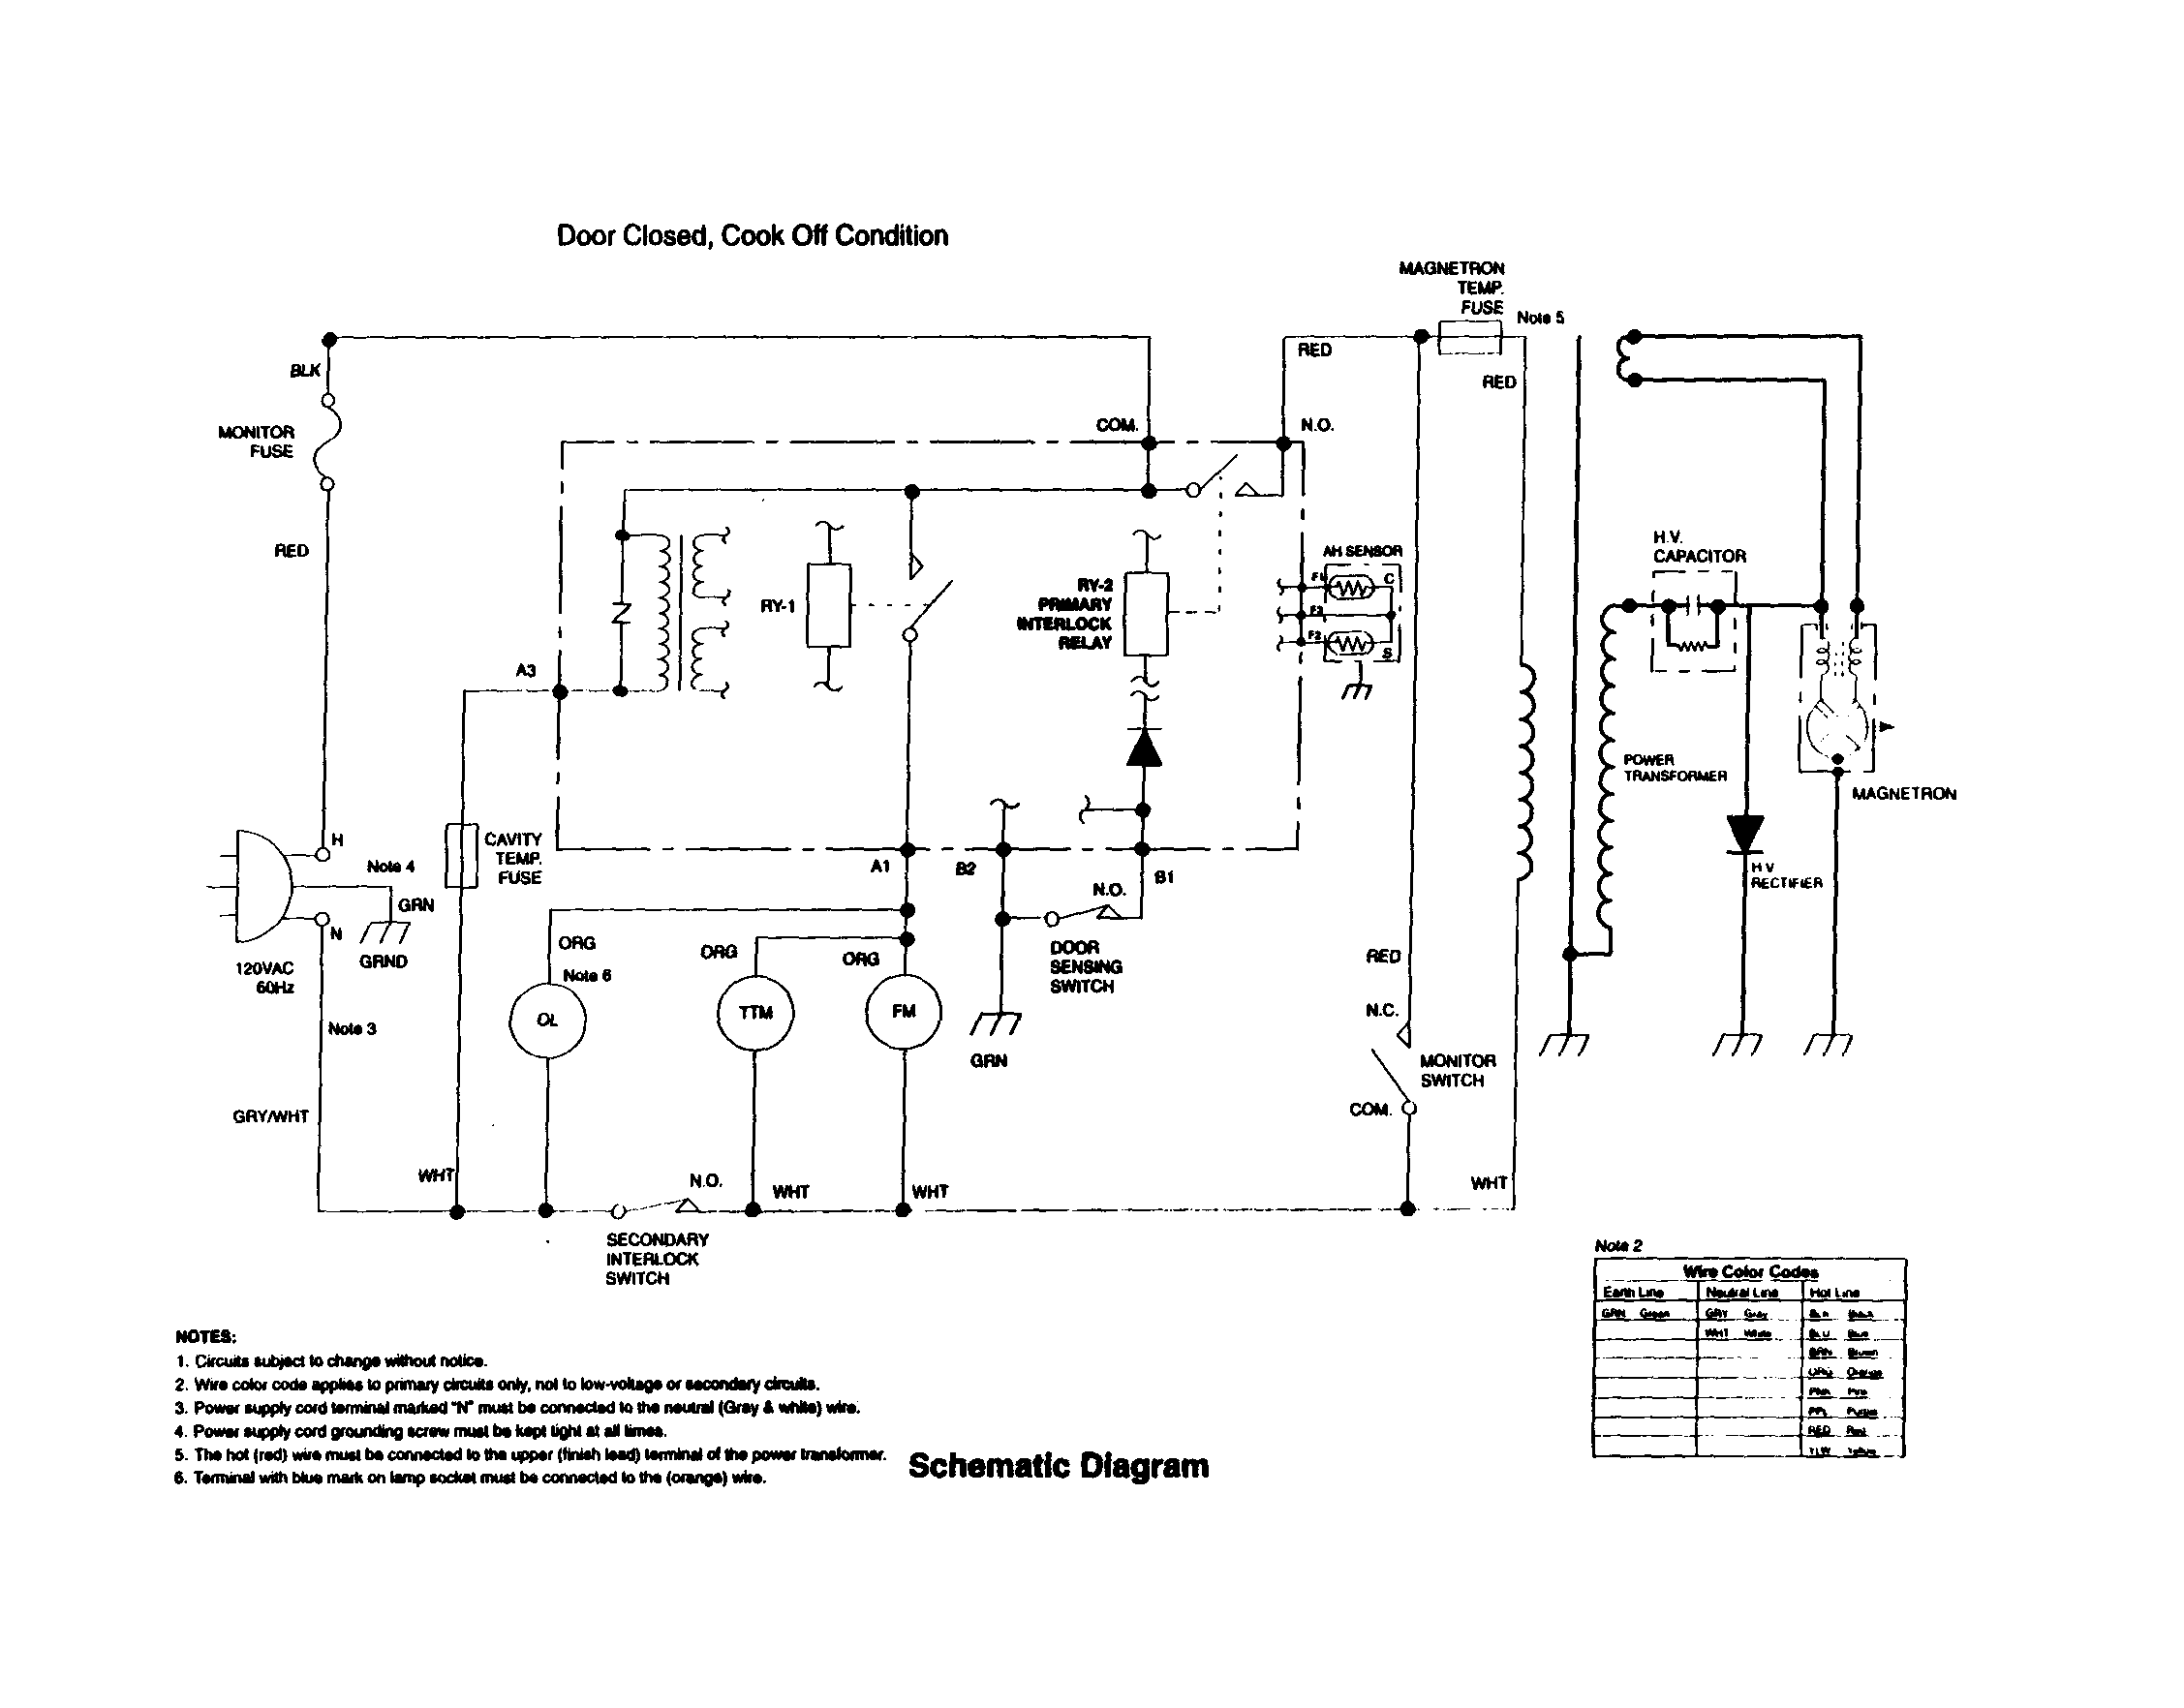 Ge Microwave Schematic - Wiring Diagram M4 on